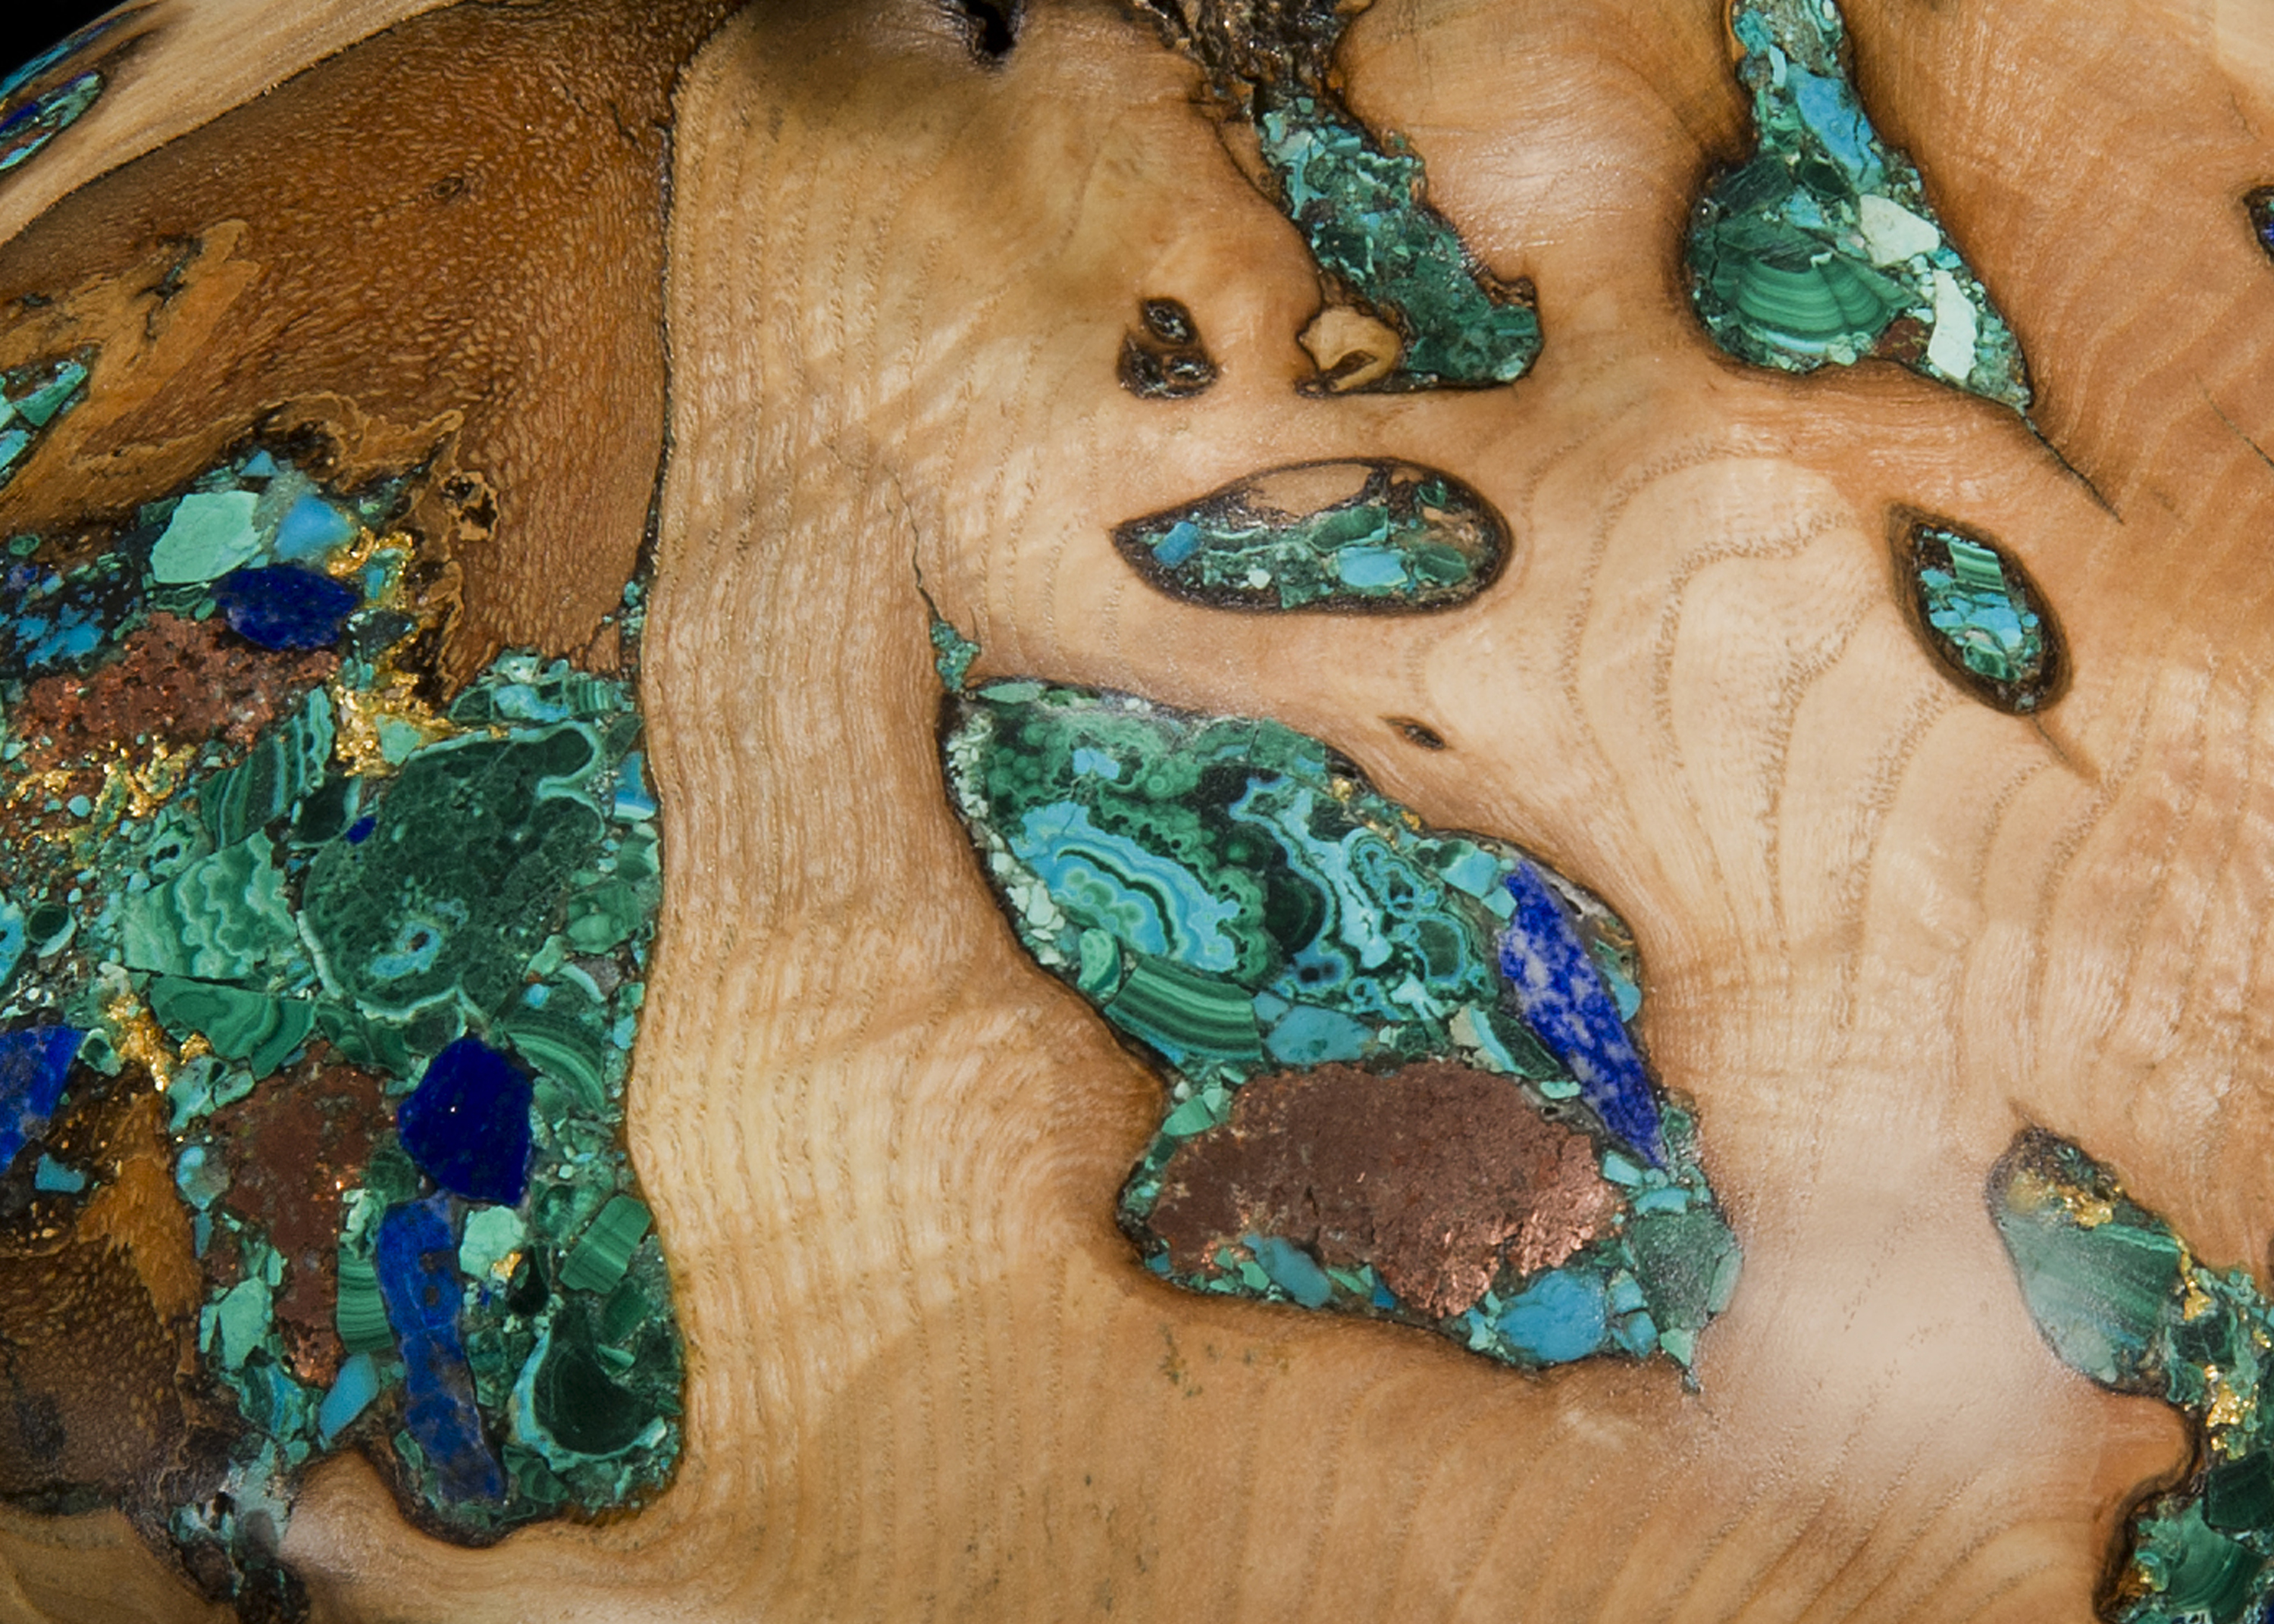 EARTHLY TREASURES NO 29 close up